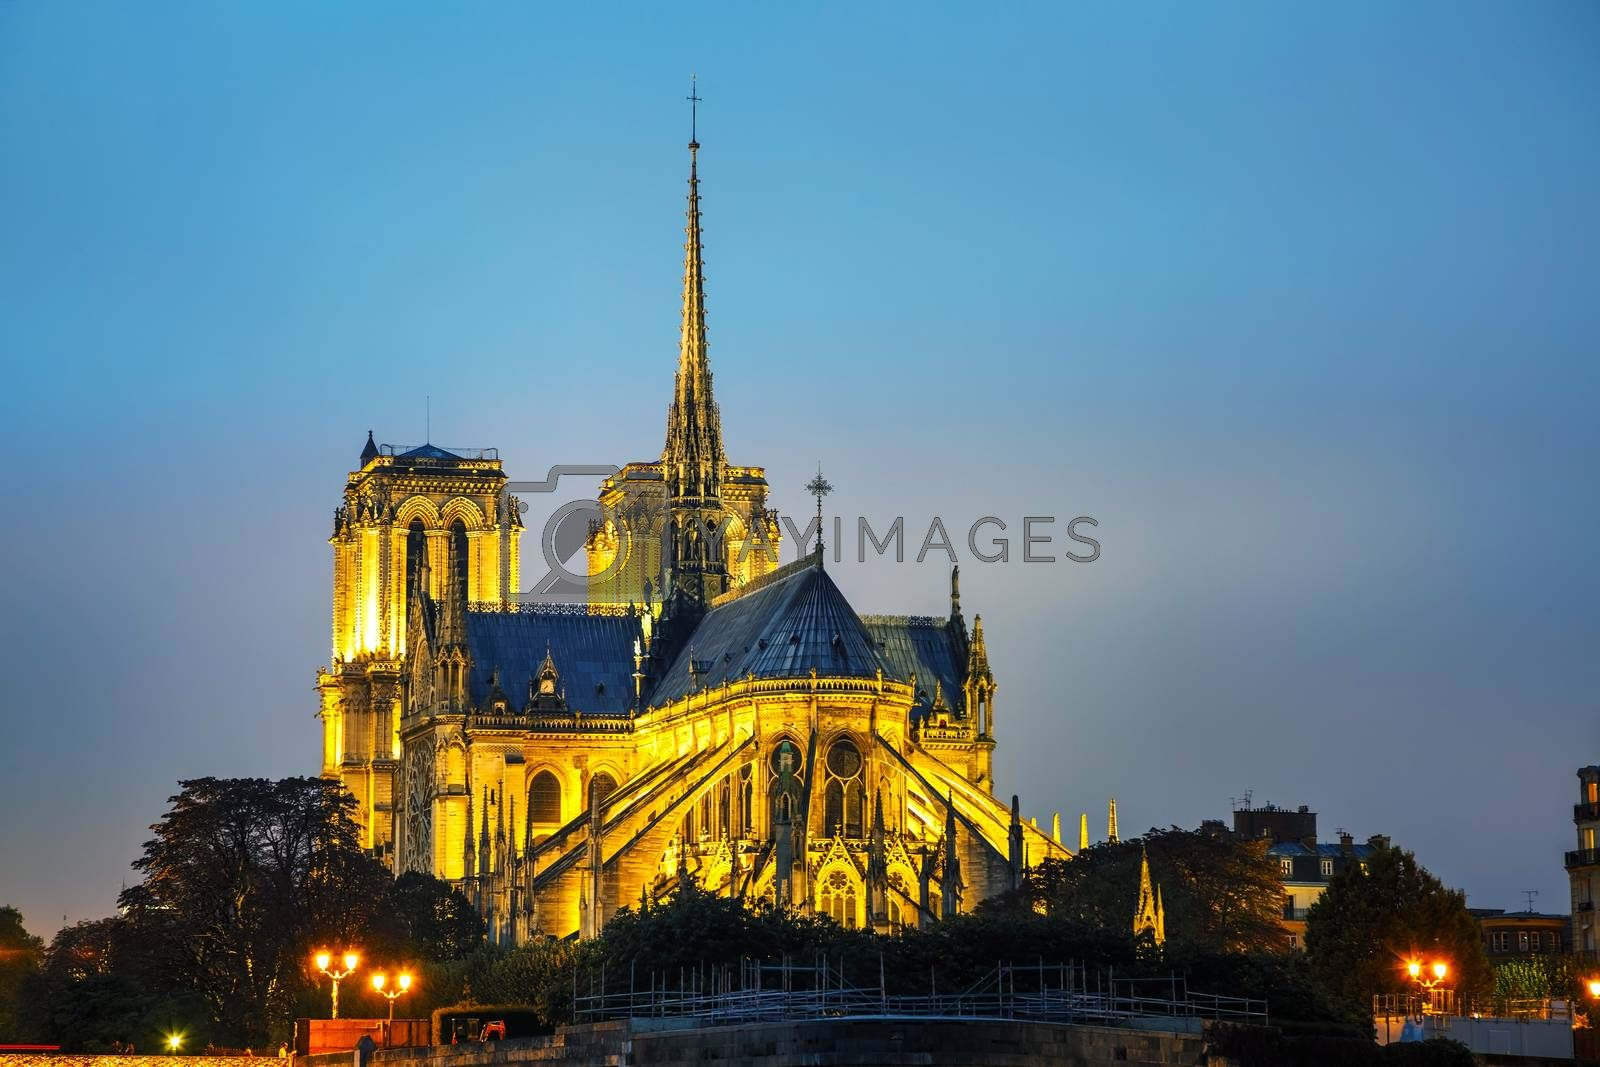 Royalty free image of Notre Dame de Paris cathedral by AndreyKr